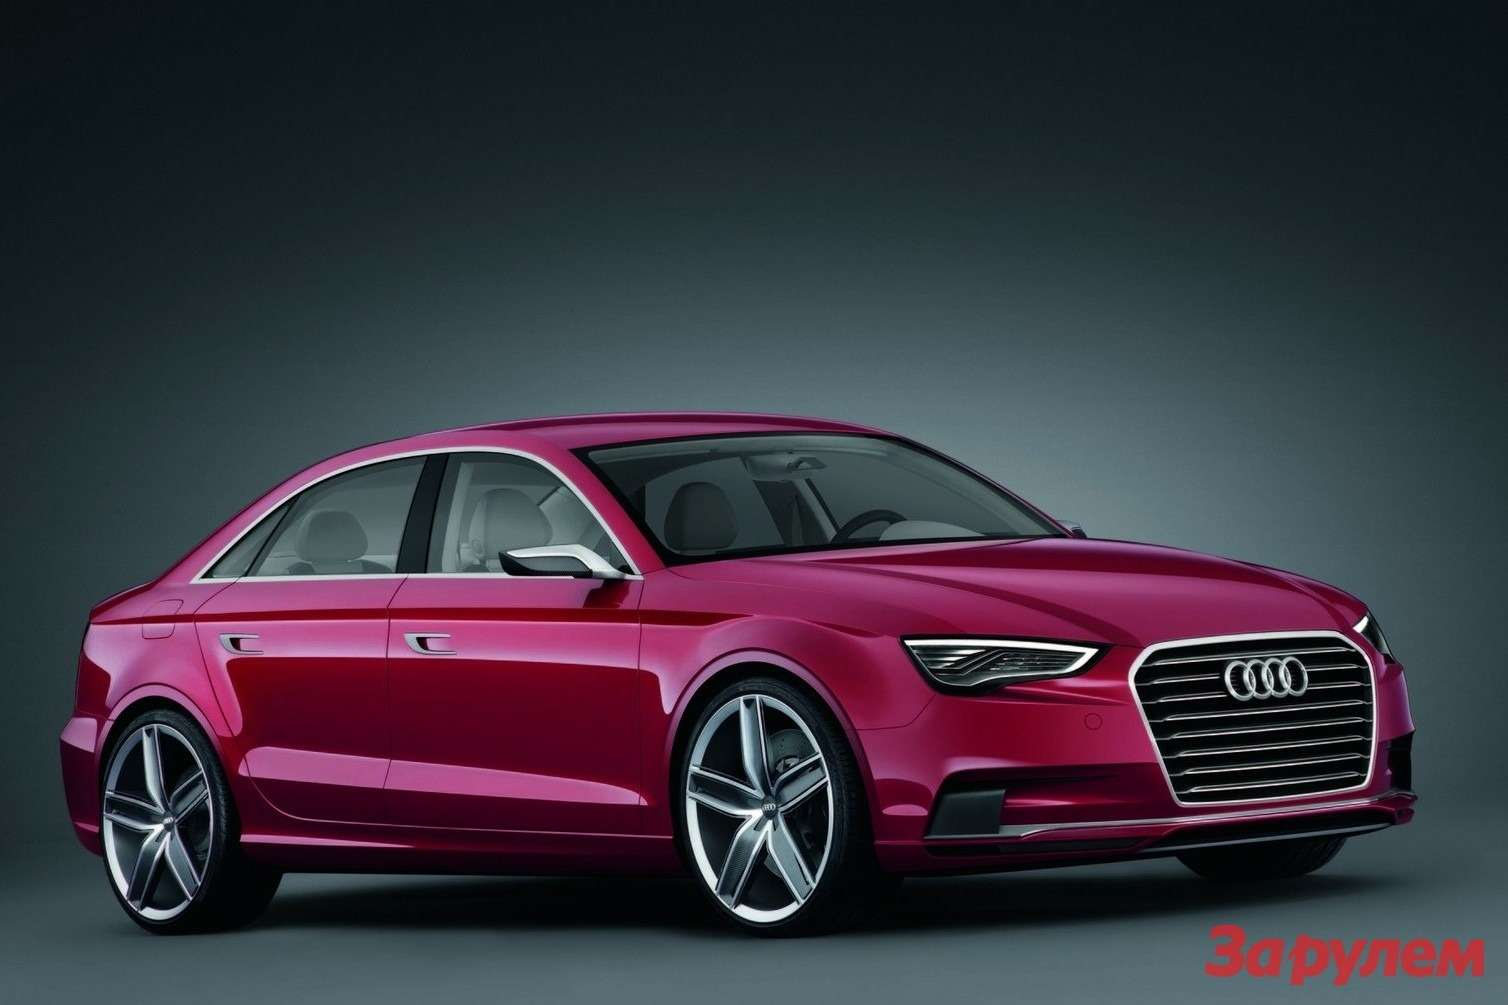 Audi A3 Concept side-front view